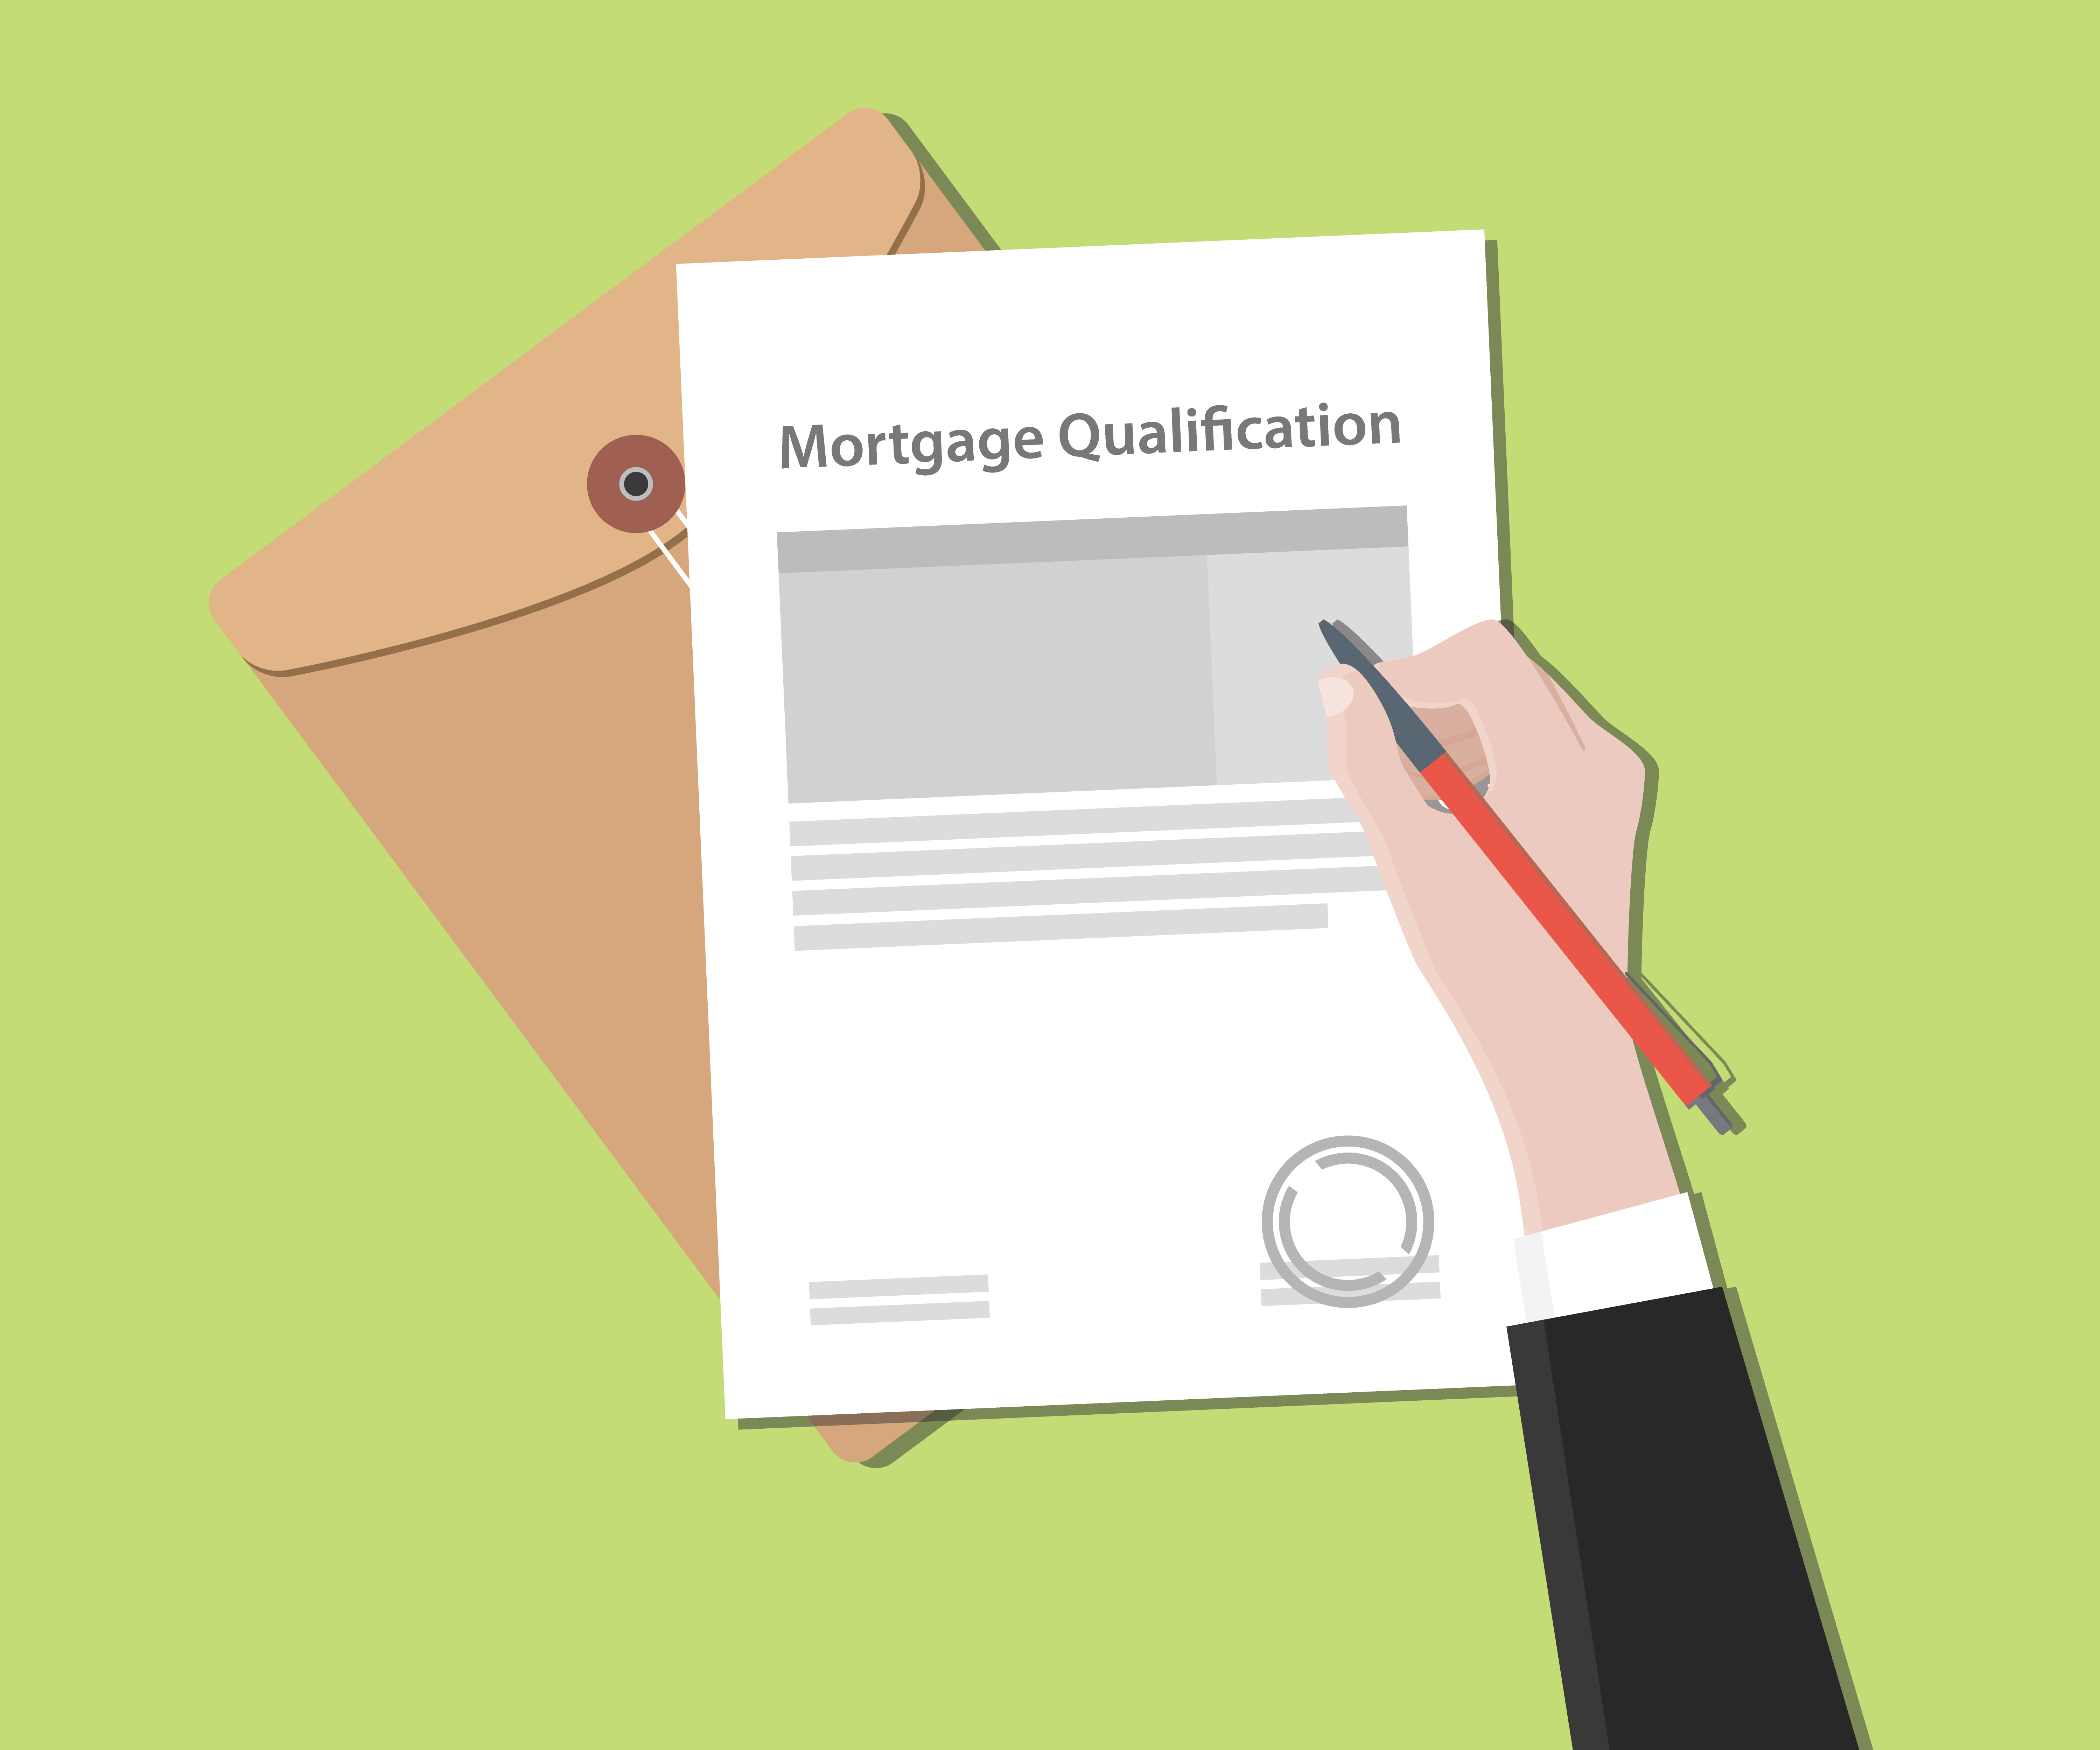 Stress Test Qualification: Mortgage Qualifications For The Self Employed